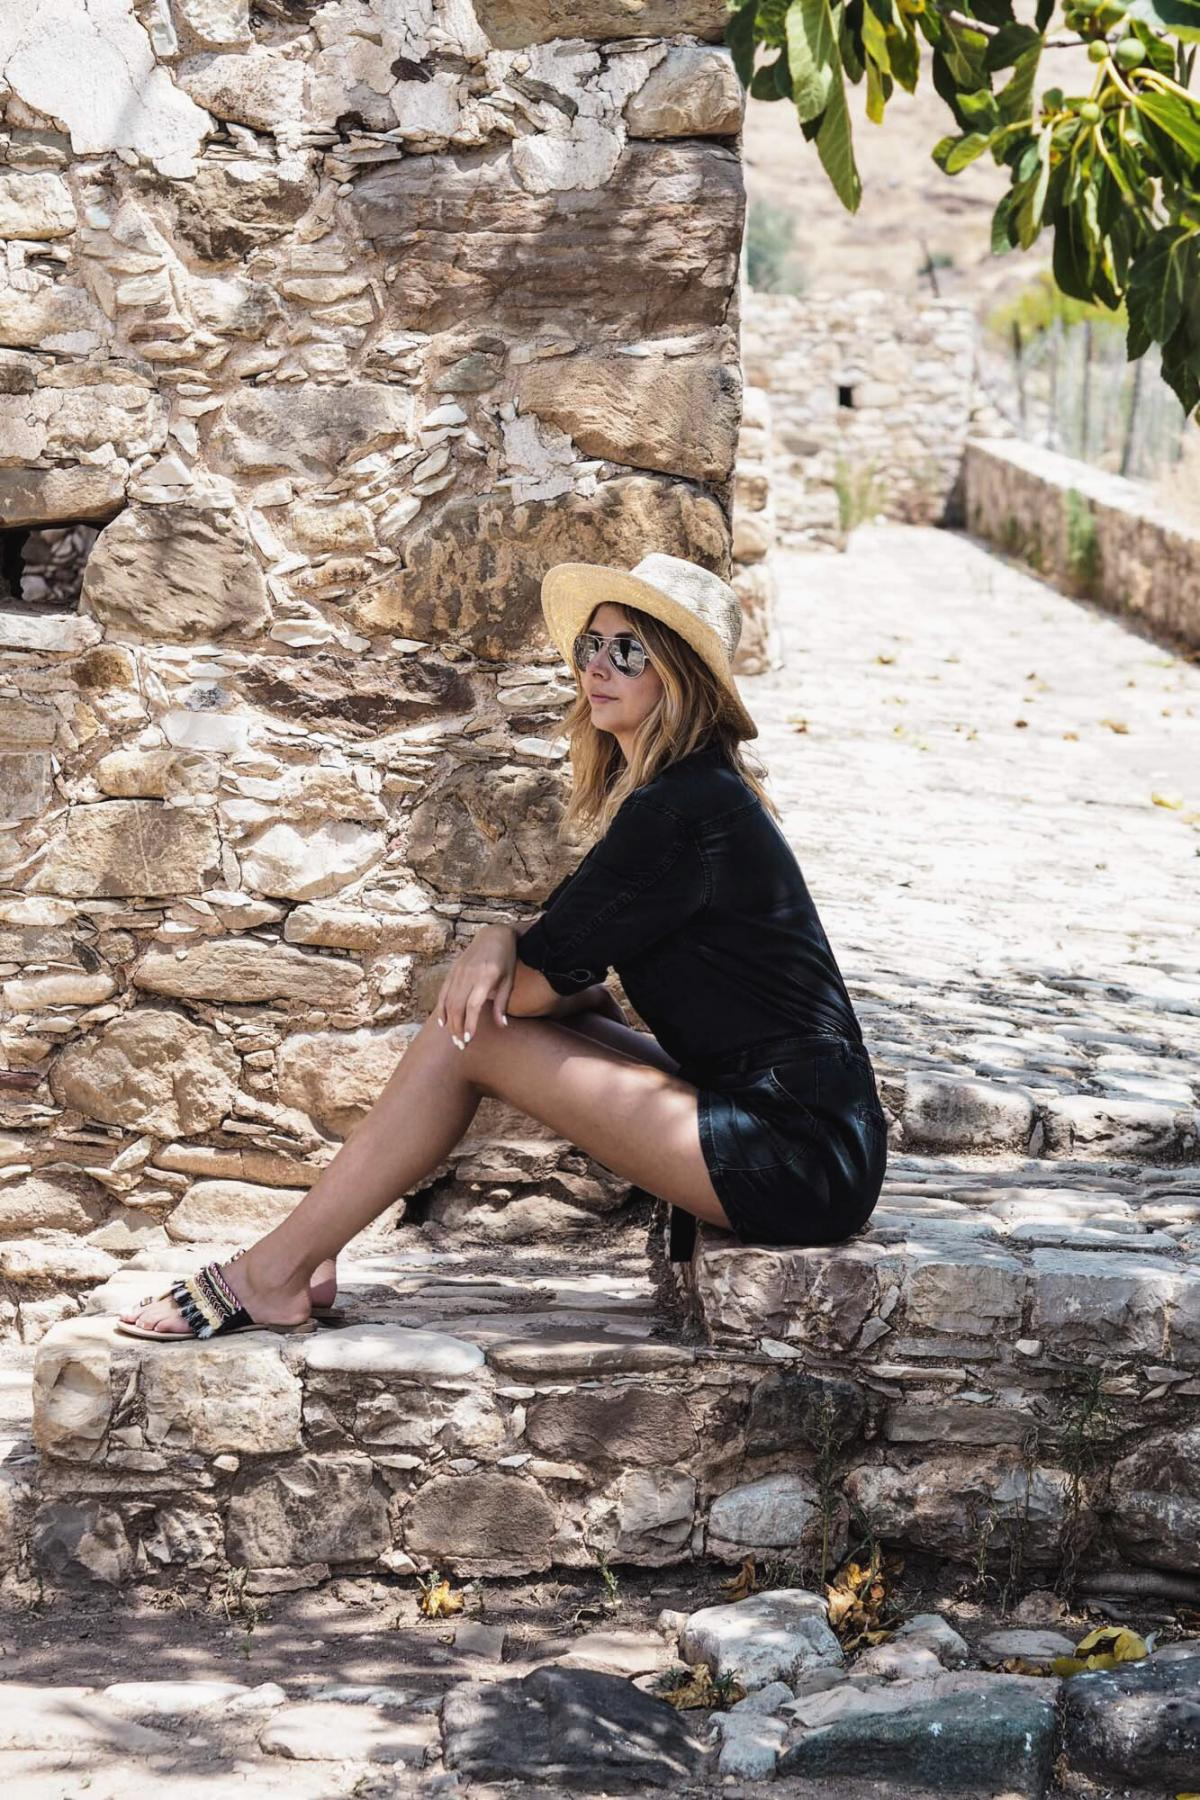 Black utility playsuit, straw hat, casual summer outfit, vacations style, travel blogger